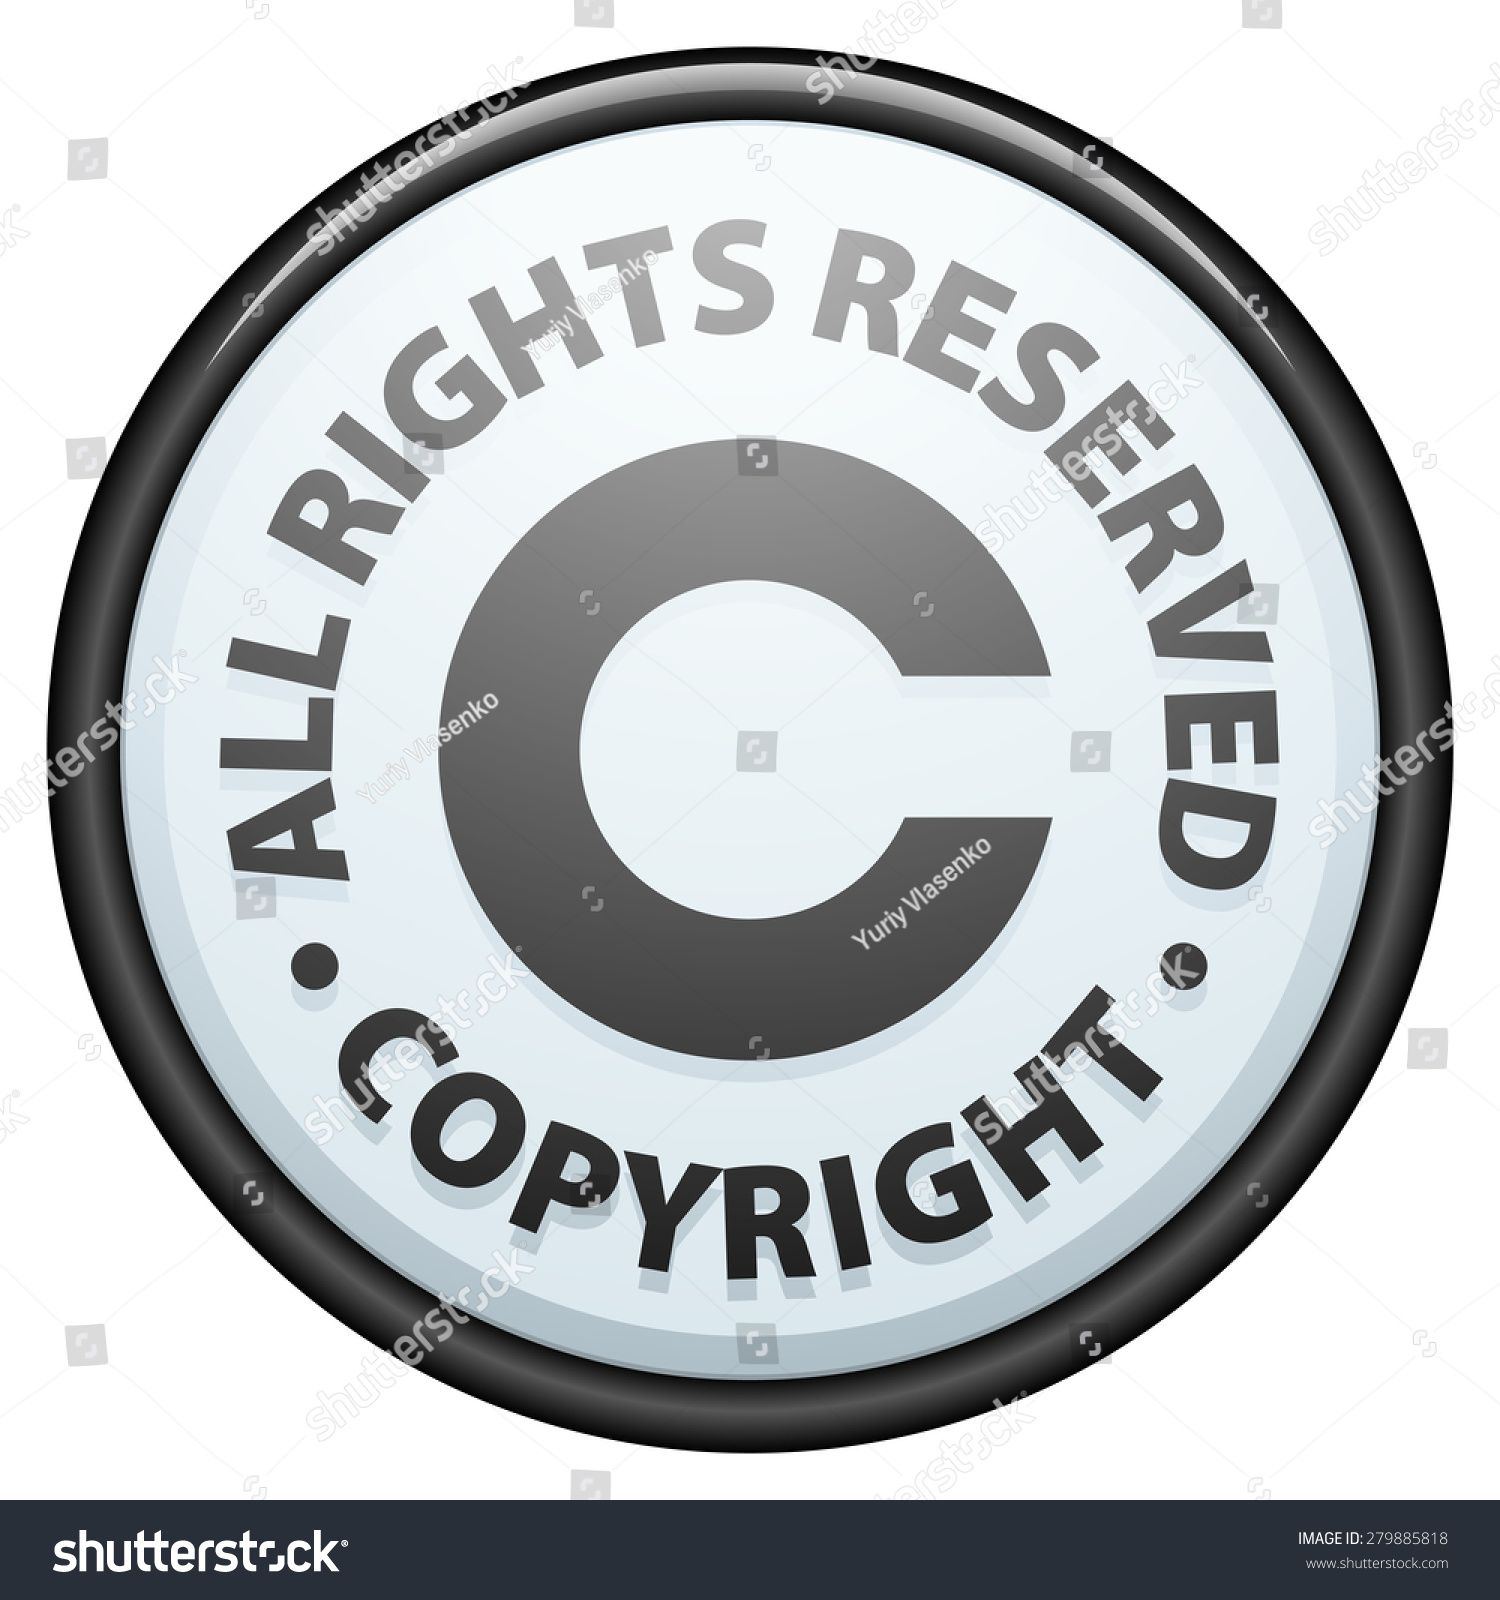 Copyright all rights reserved stock illustration 279885818 copyright all rights reserved biocorpaavc